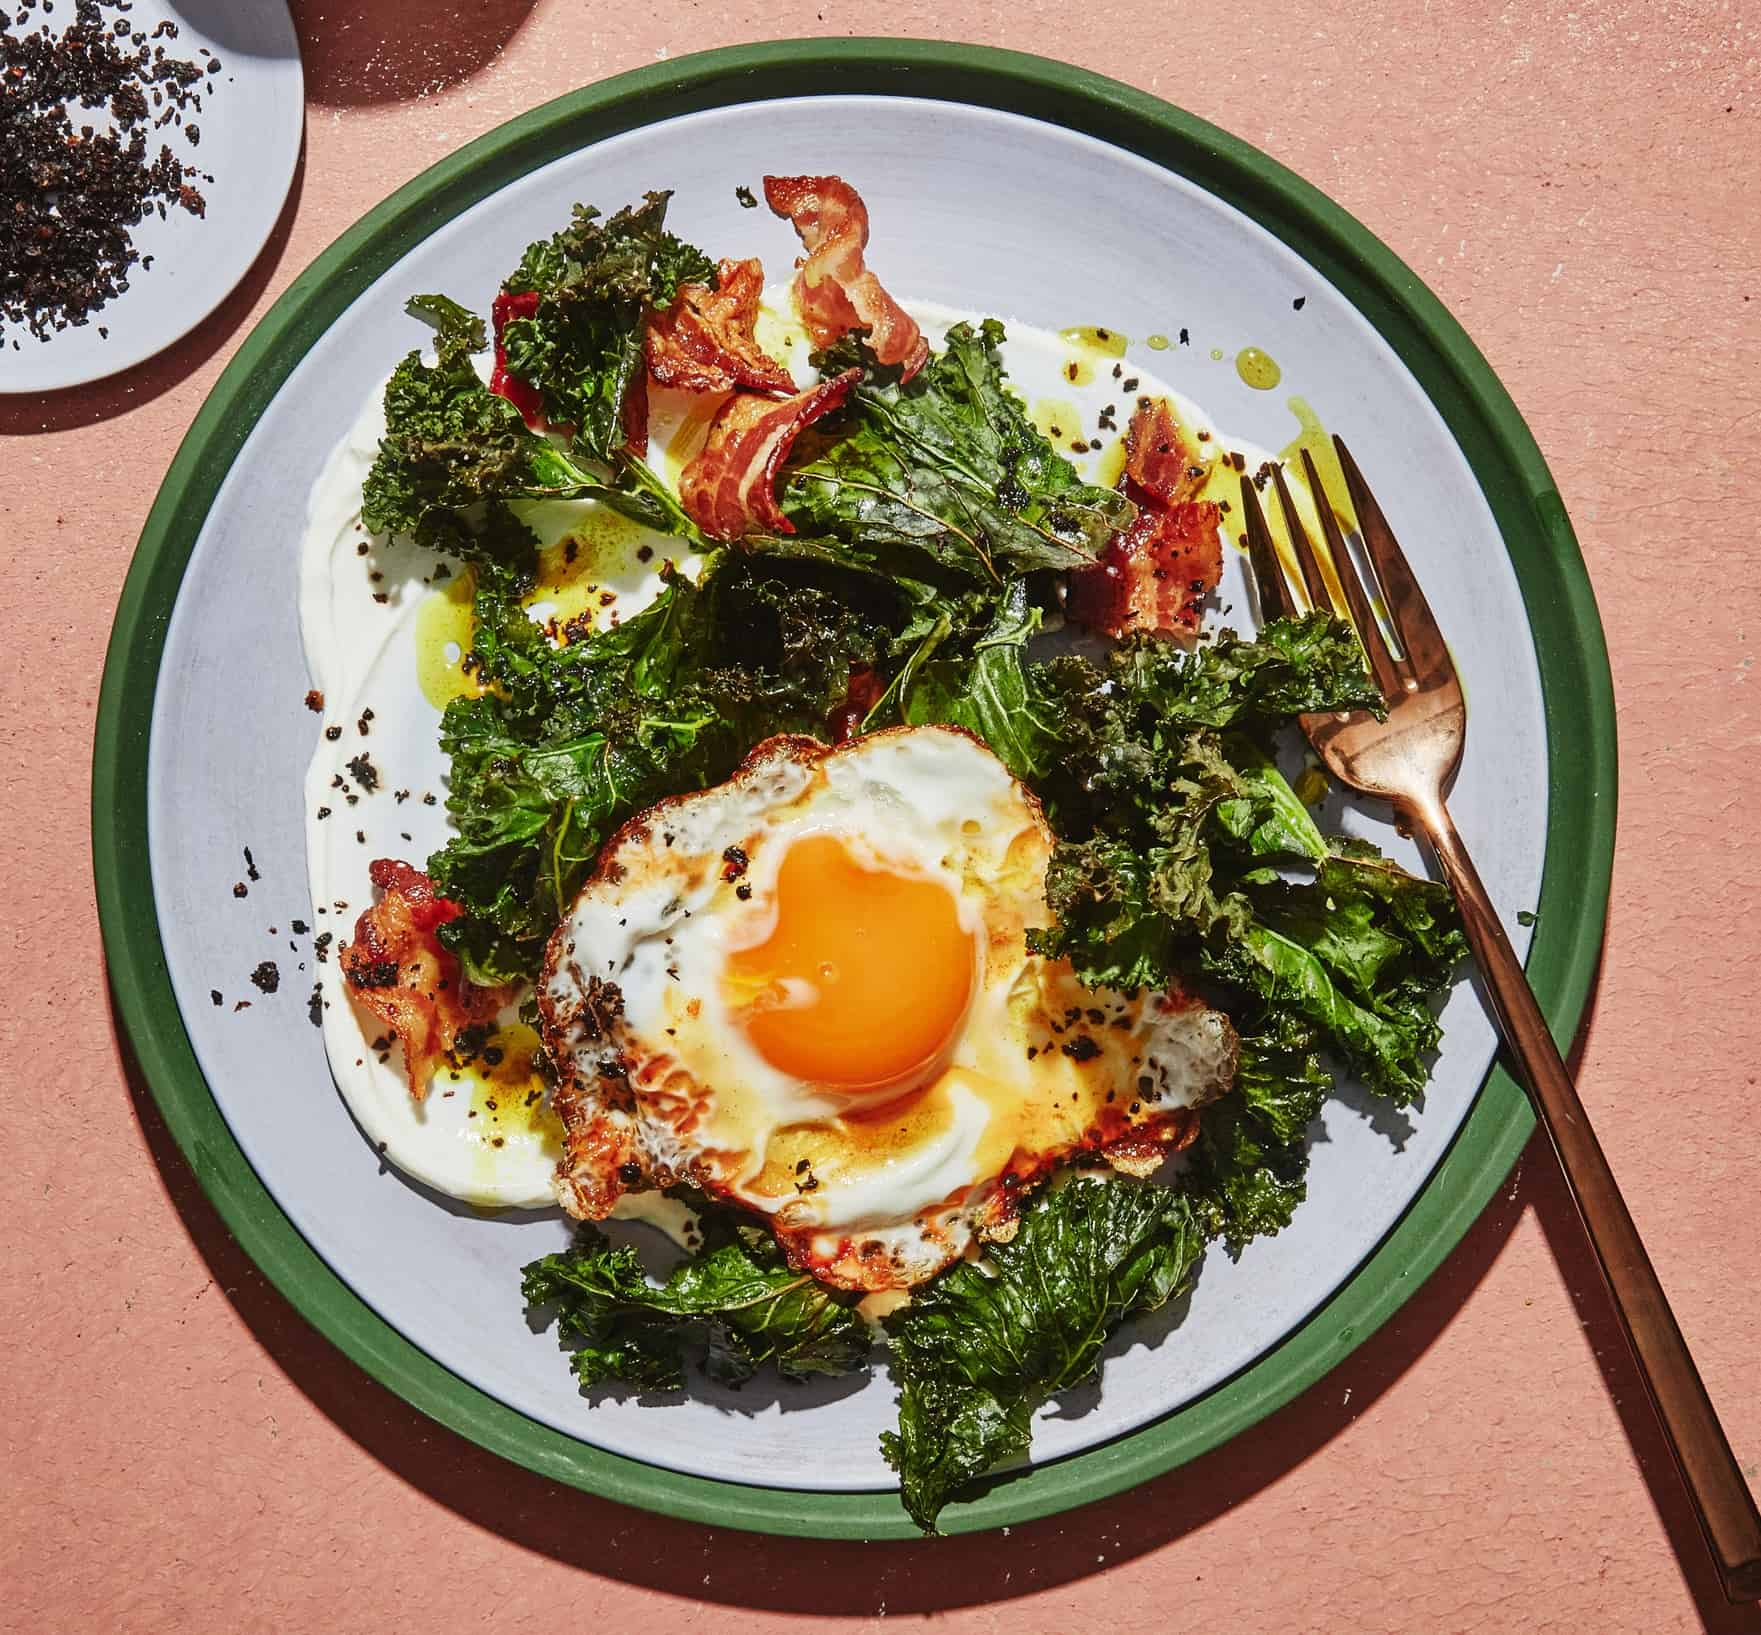 a plate of turmeric fried egg and bacon with kale